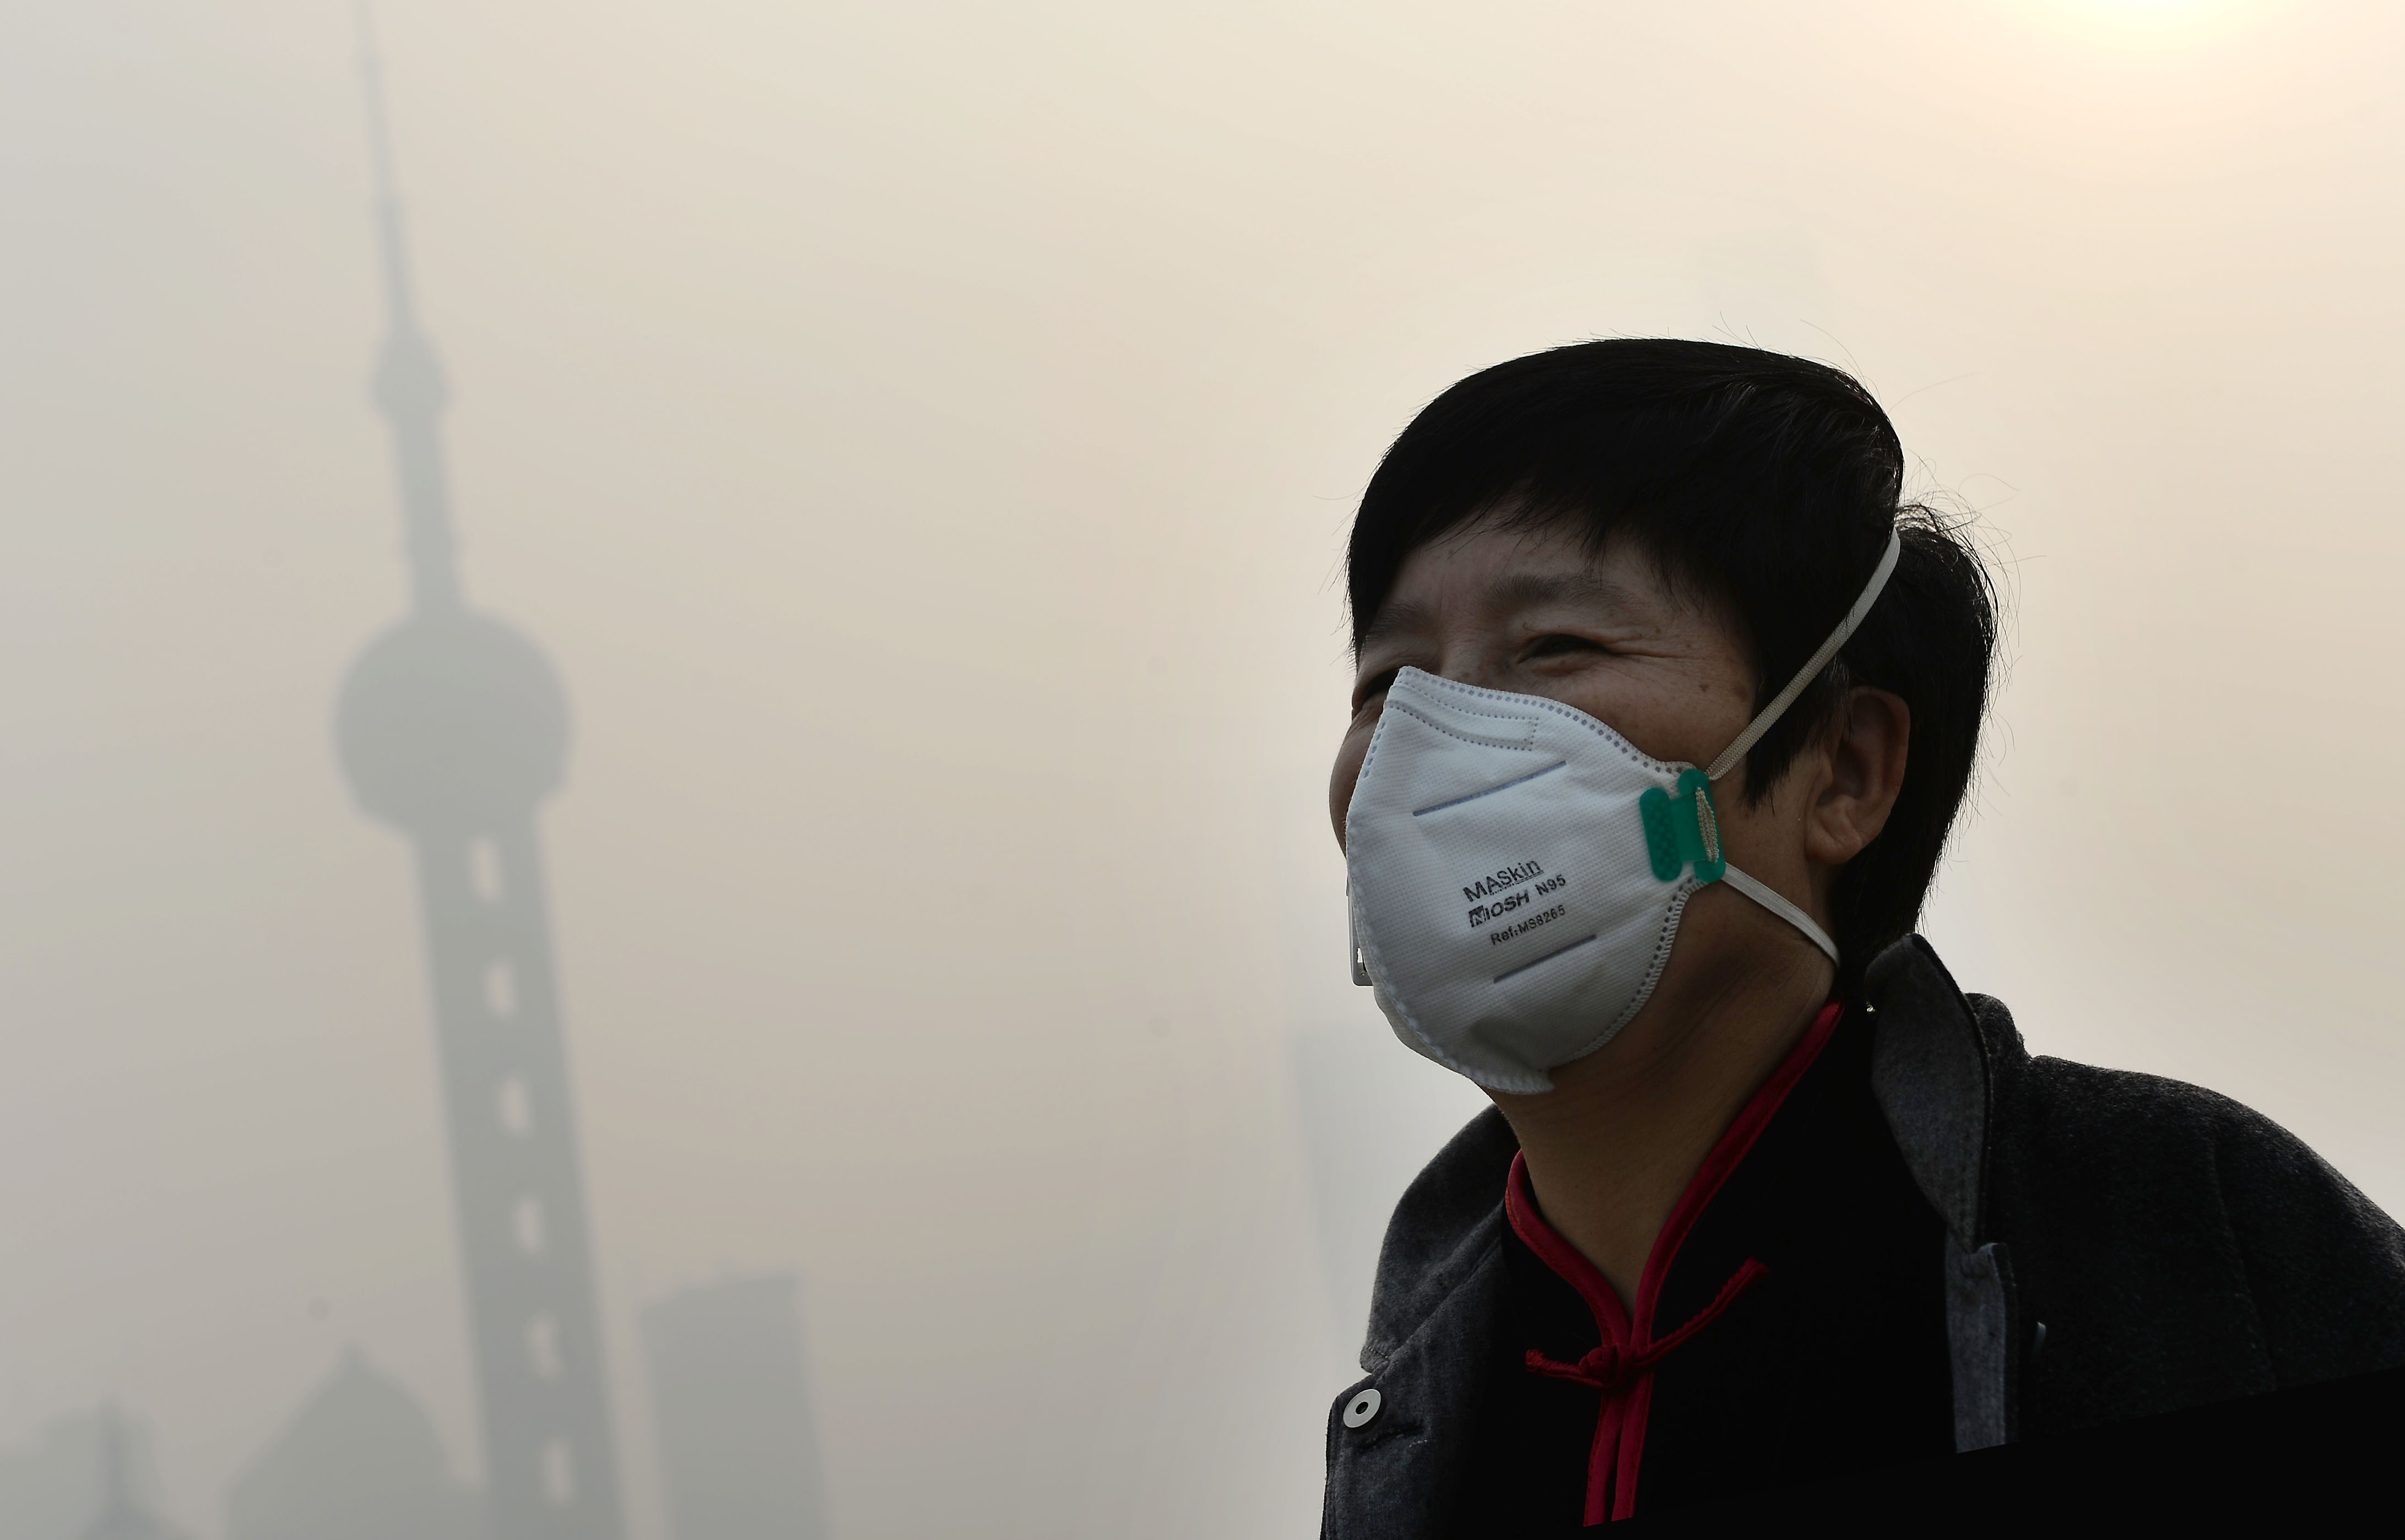 Shanghai smothered by smog as air heavily polluted